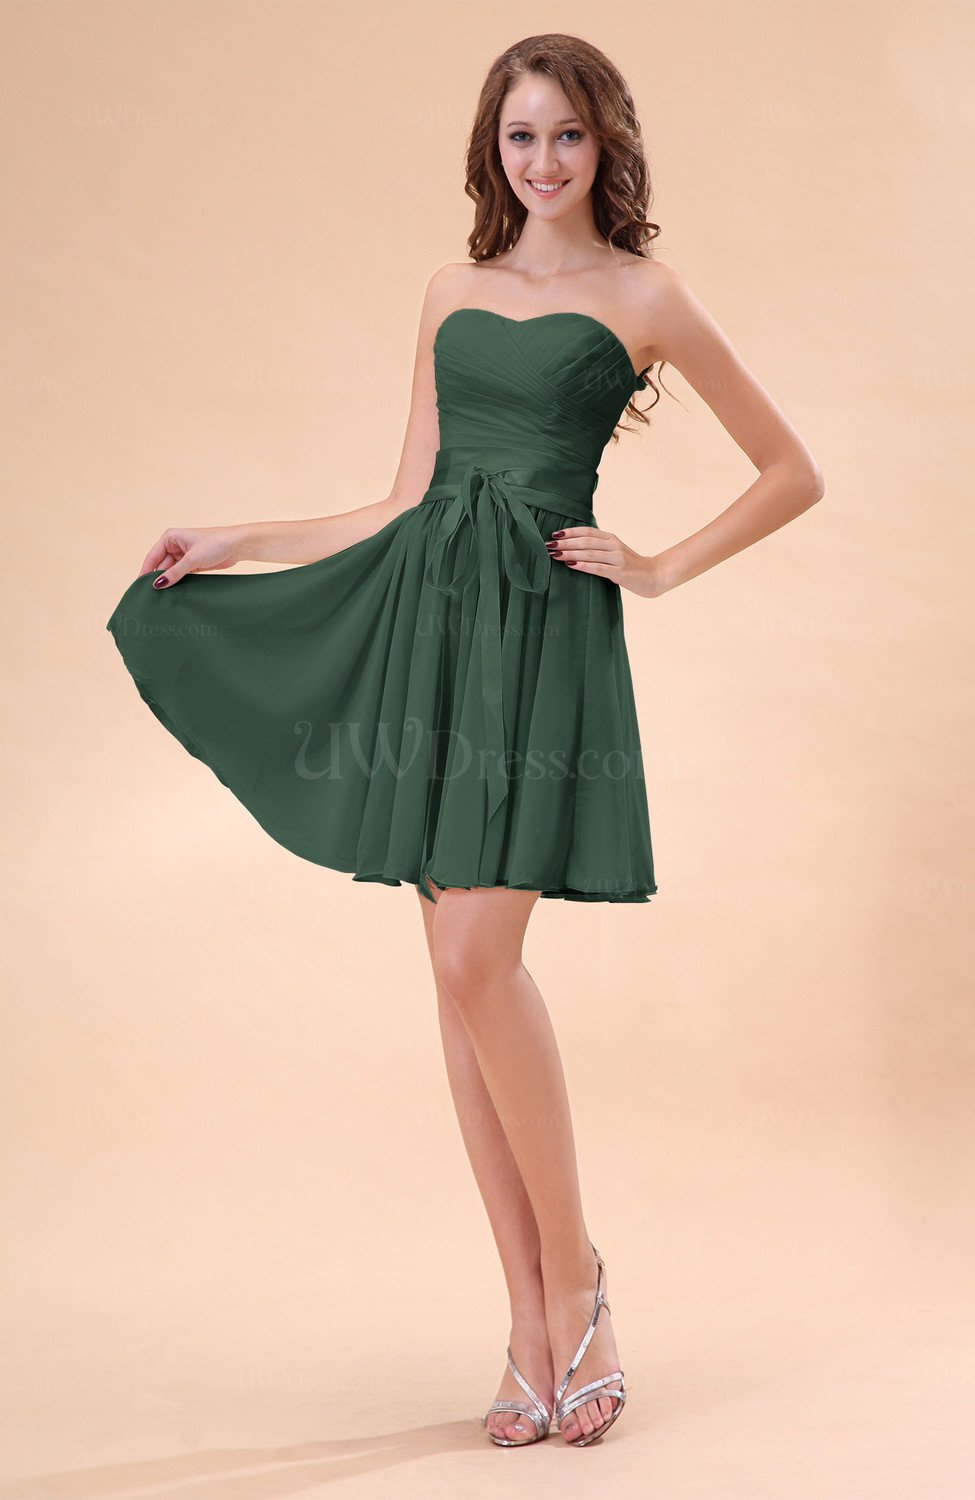 cd191272af0 Hunter Green Cute A-line Sweetheart Zip up Chiffon Sash Bridesmaid ...